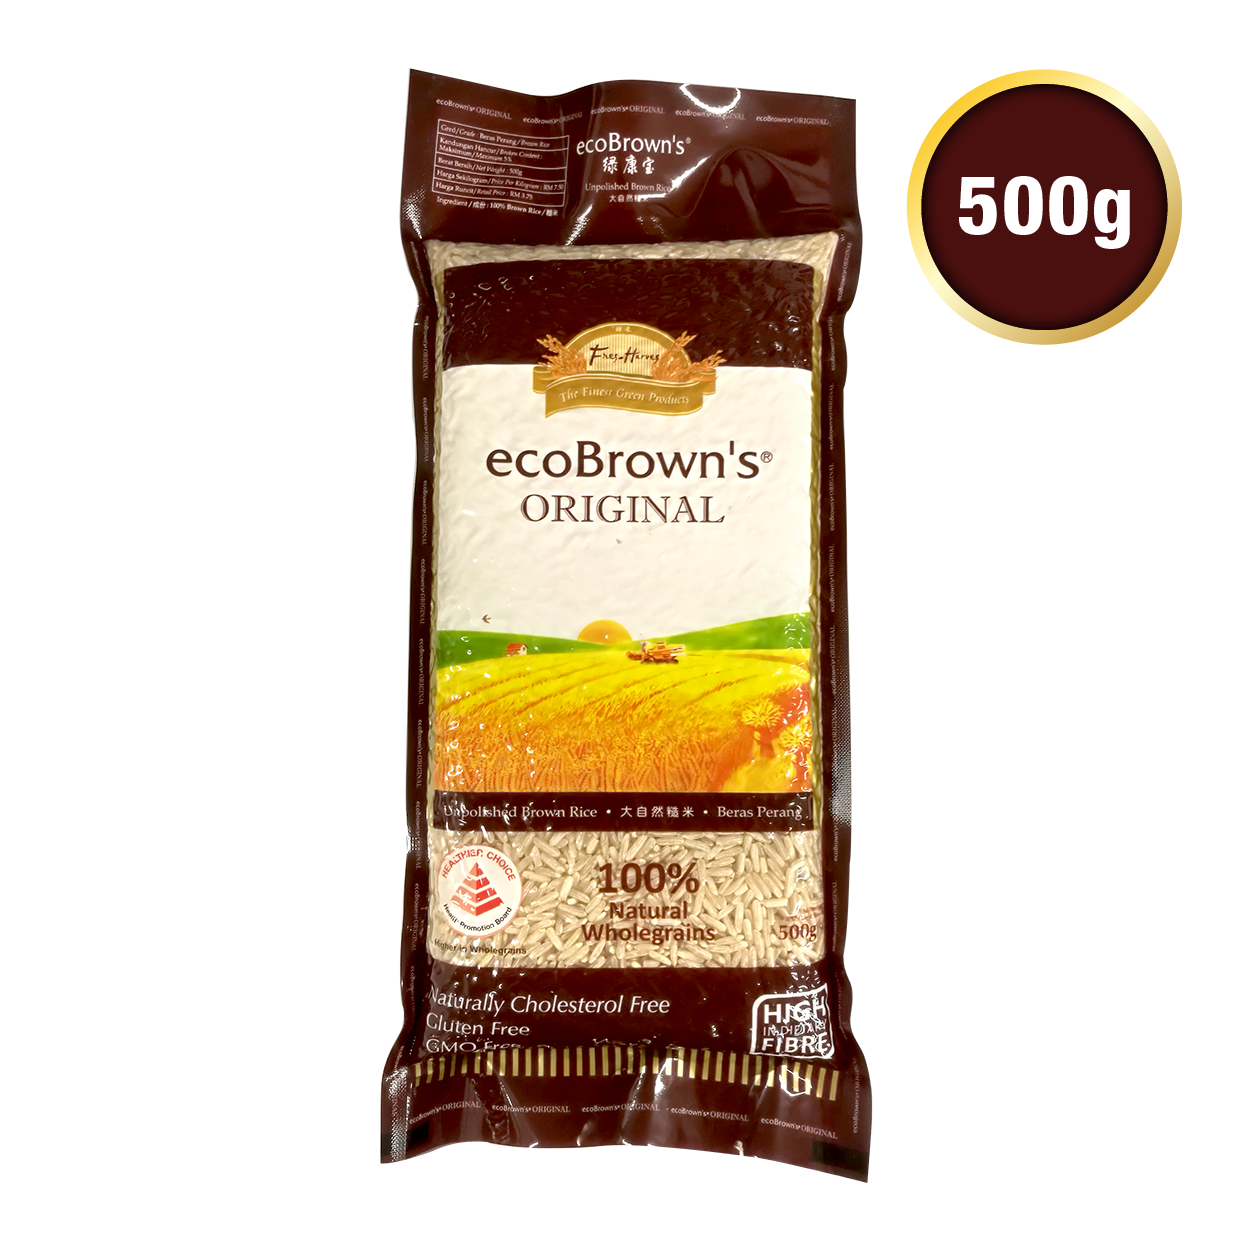 ecoBrown's ORIGINAL 500g